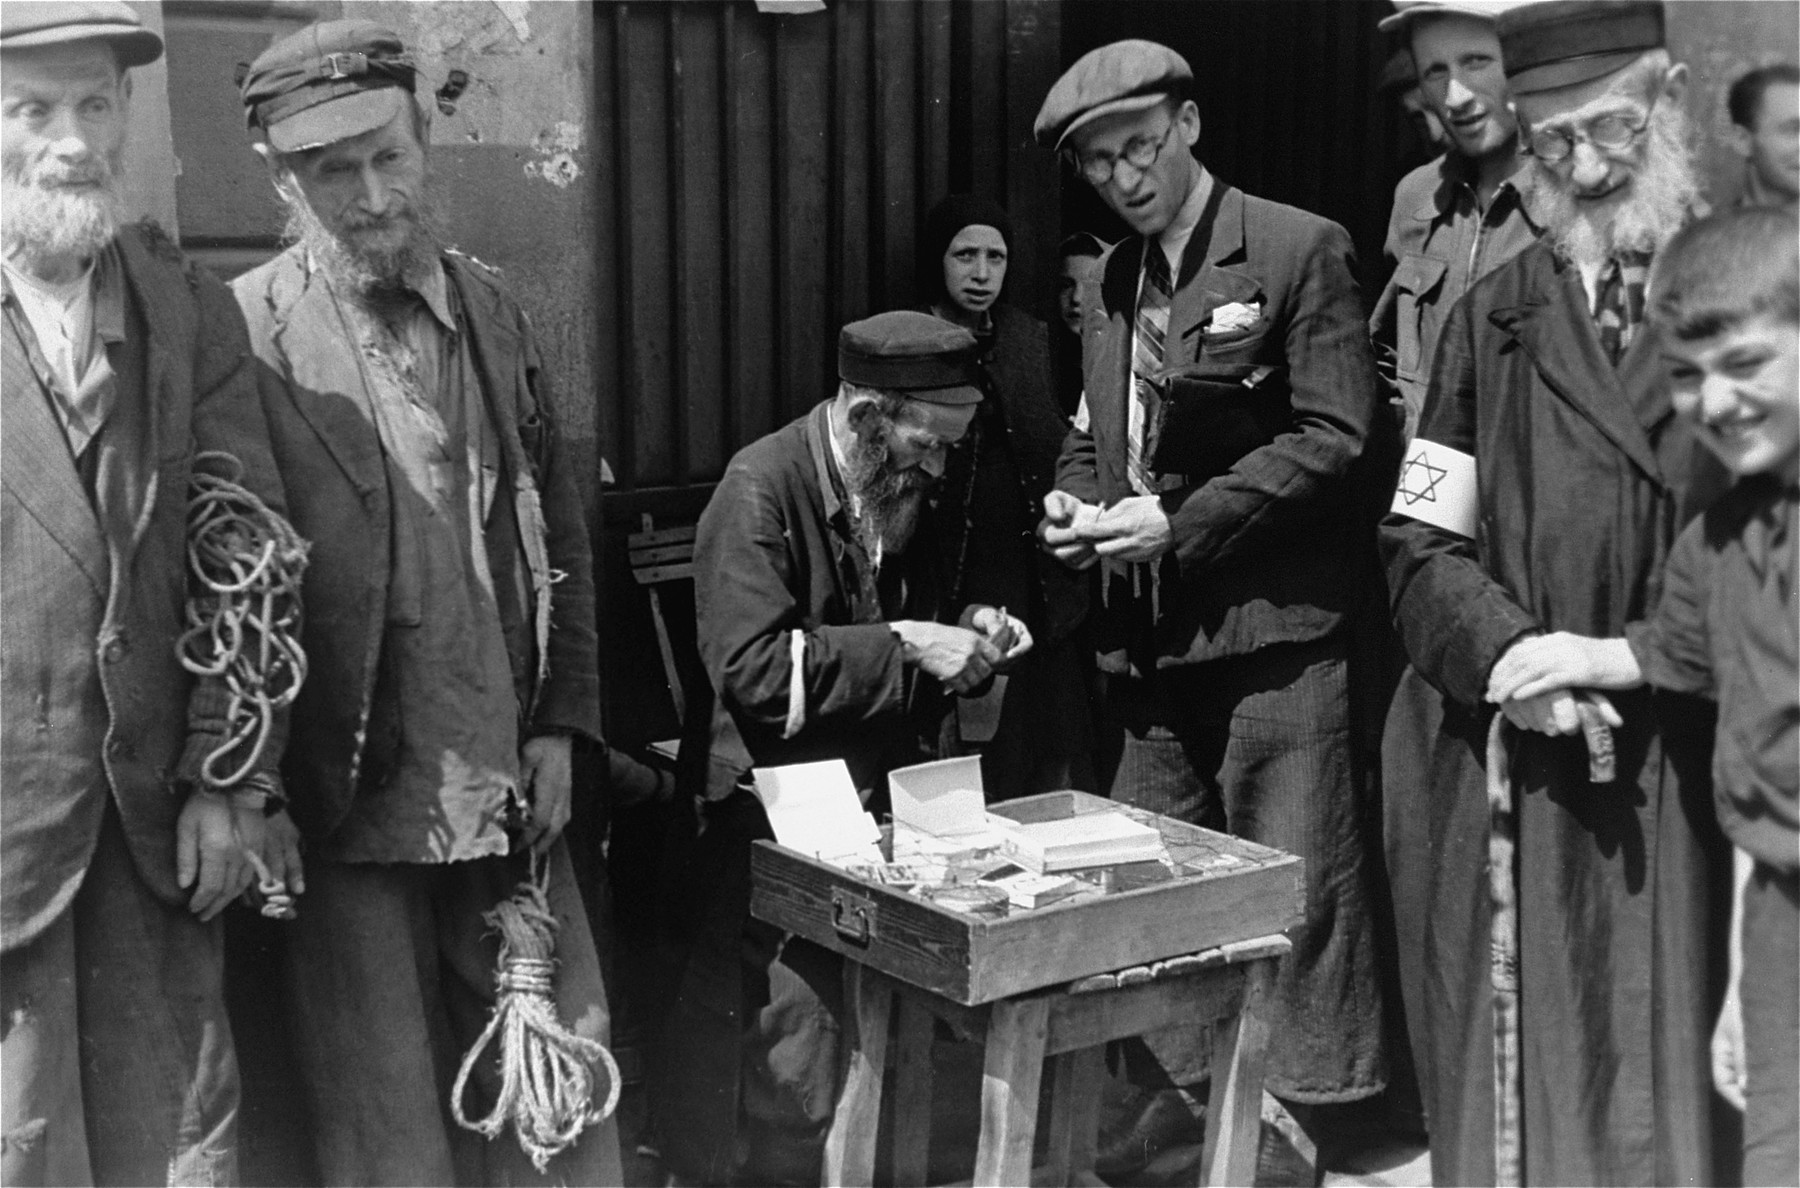 A group of people are gathered around a street vendor in the Warsaw ghetto, who is conducting business with one of them.